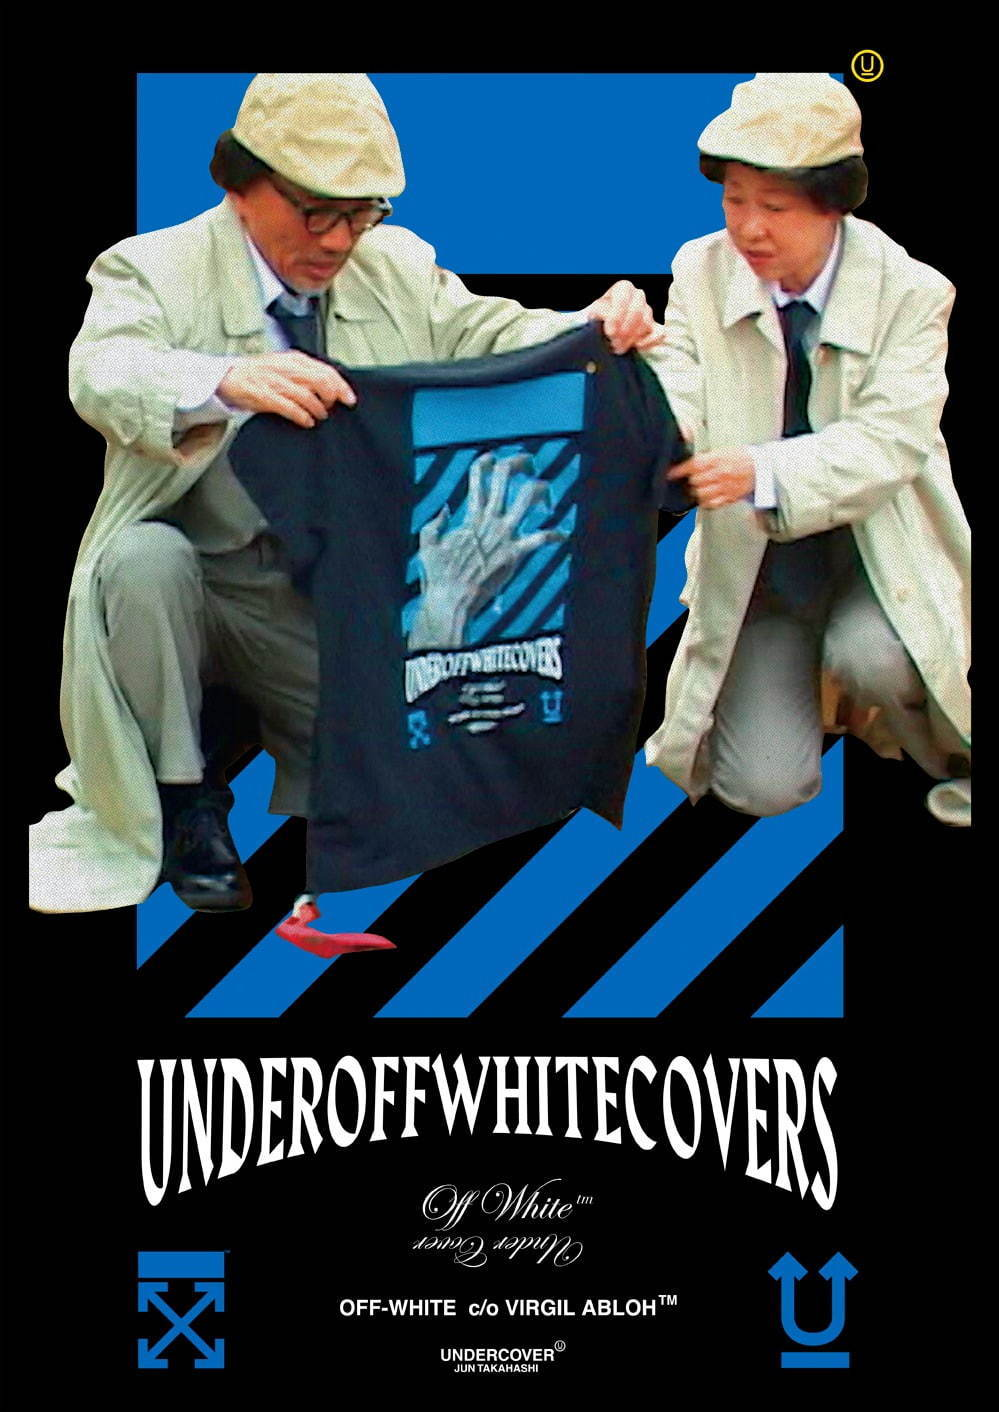 undercover-off-white-19aw-collaboration-release-20190914